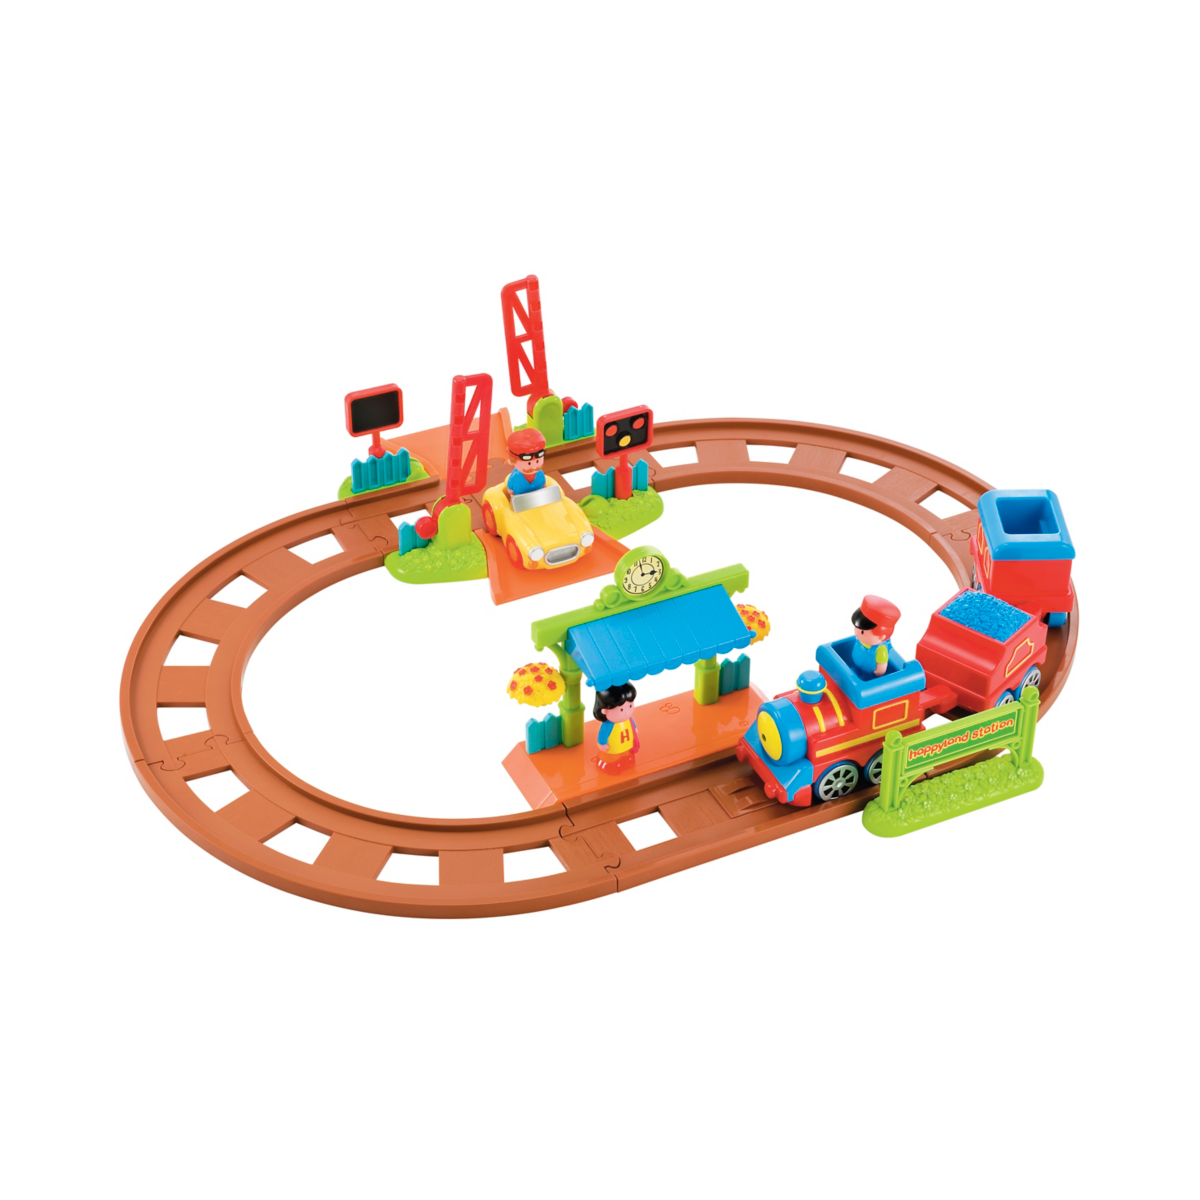 Happyland Country Train Set from Early Learning Center